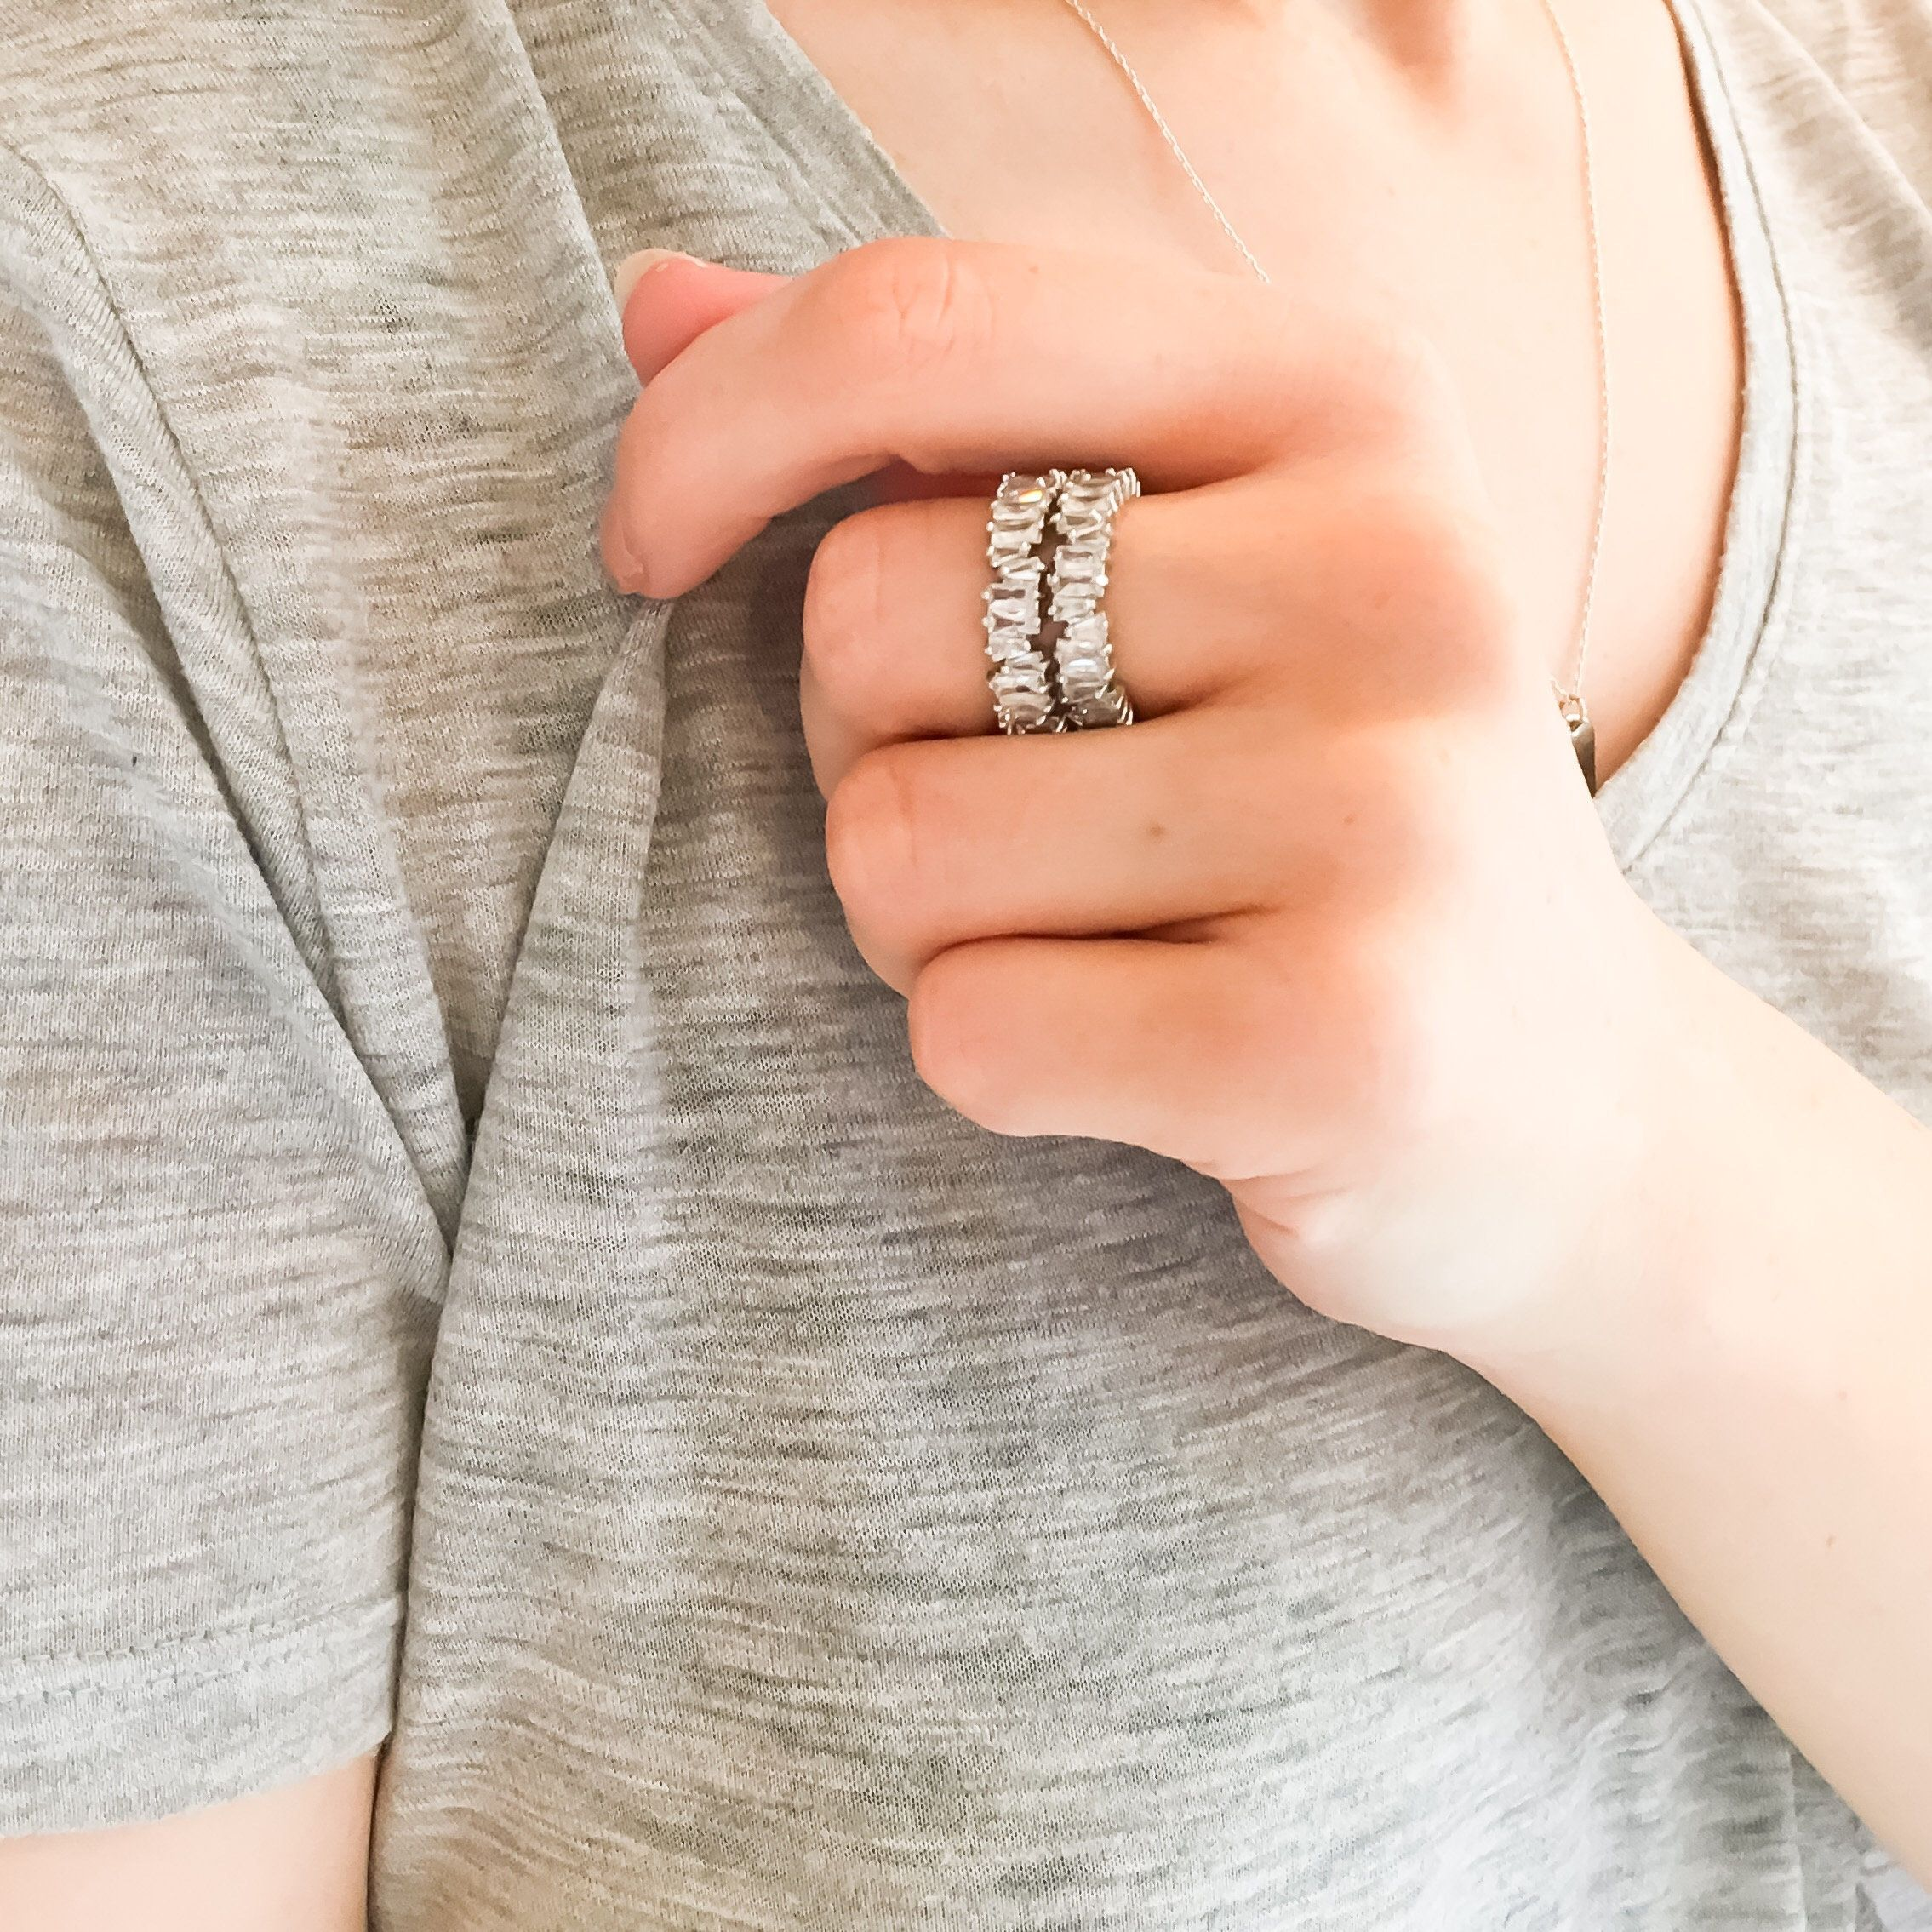 b703cb4a4 Baguette Ring || CZ Stone || Eternity Ring || Gifts For Her || Kylie Jenner  || Band Ring || Silver Jewelry || Glam Ring || Ice Ring by MilanoBay on Etsy